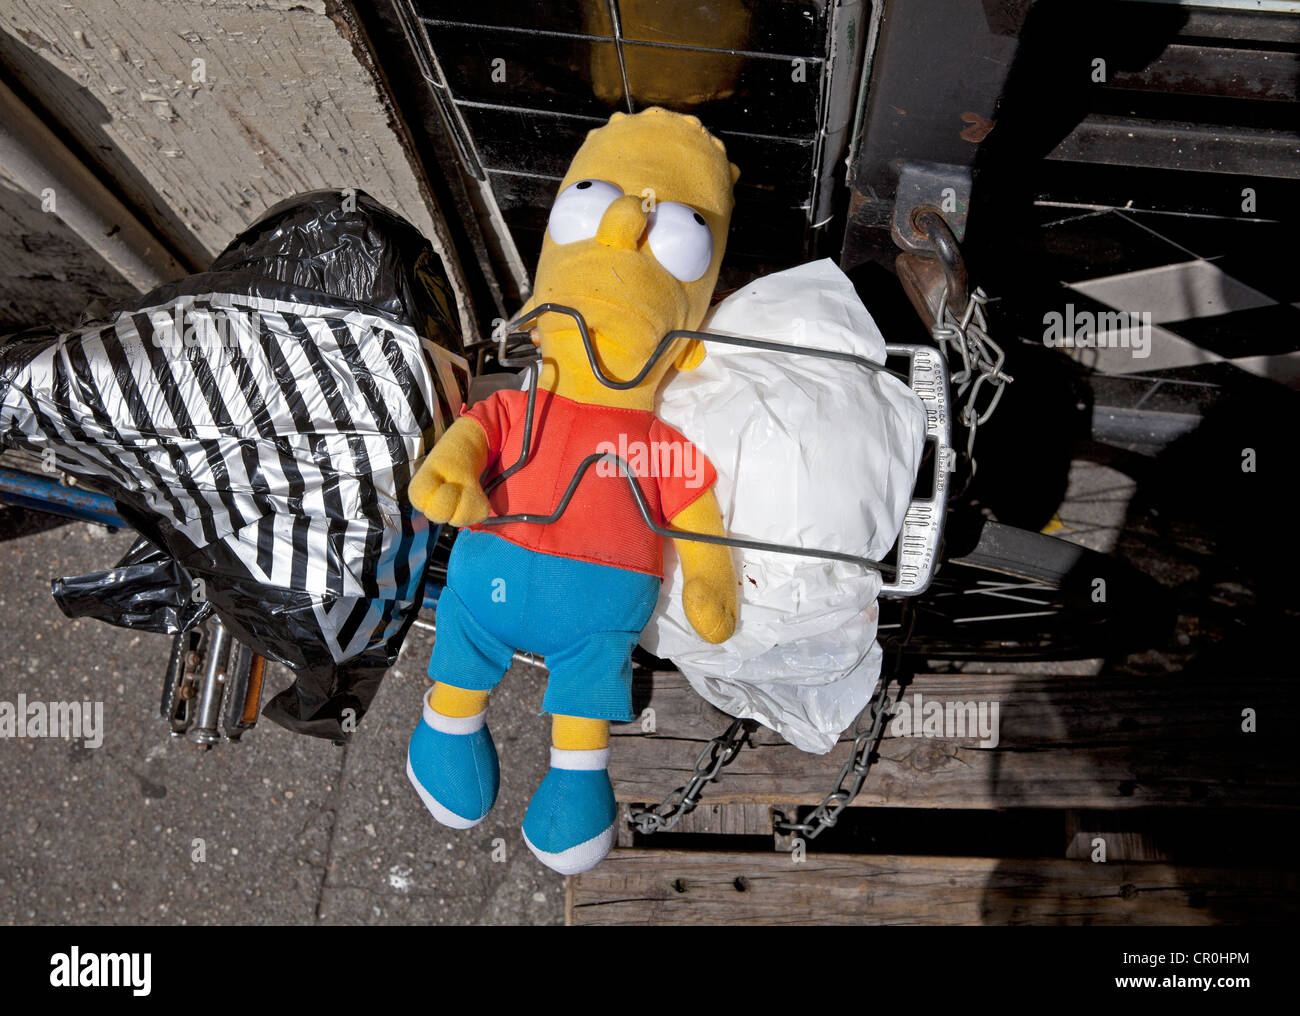 A bicycle owner straps Bart Simpson to the carrier in New York City. - Stock Image